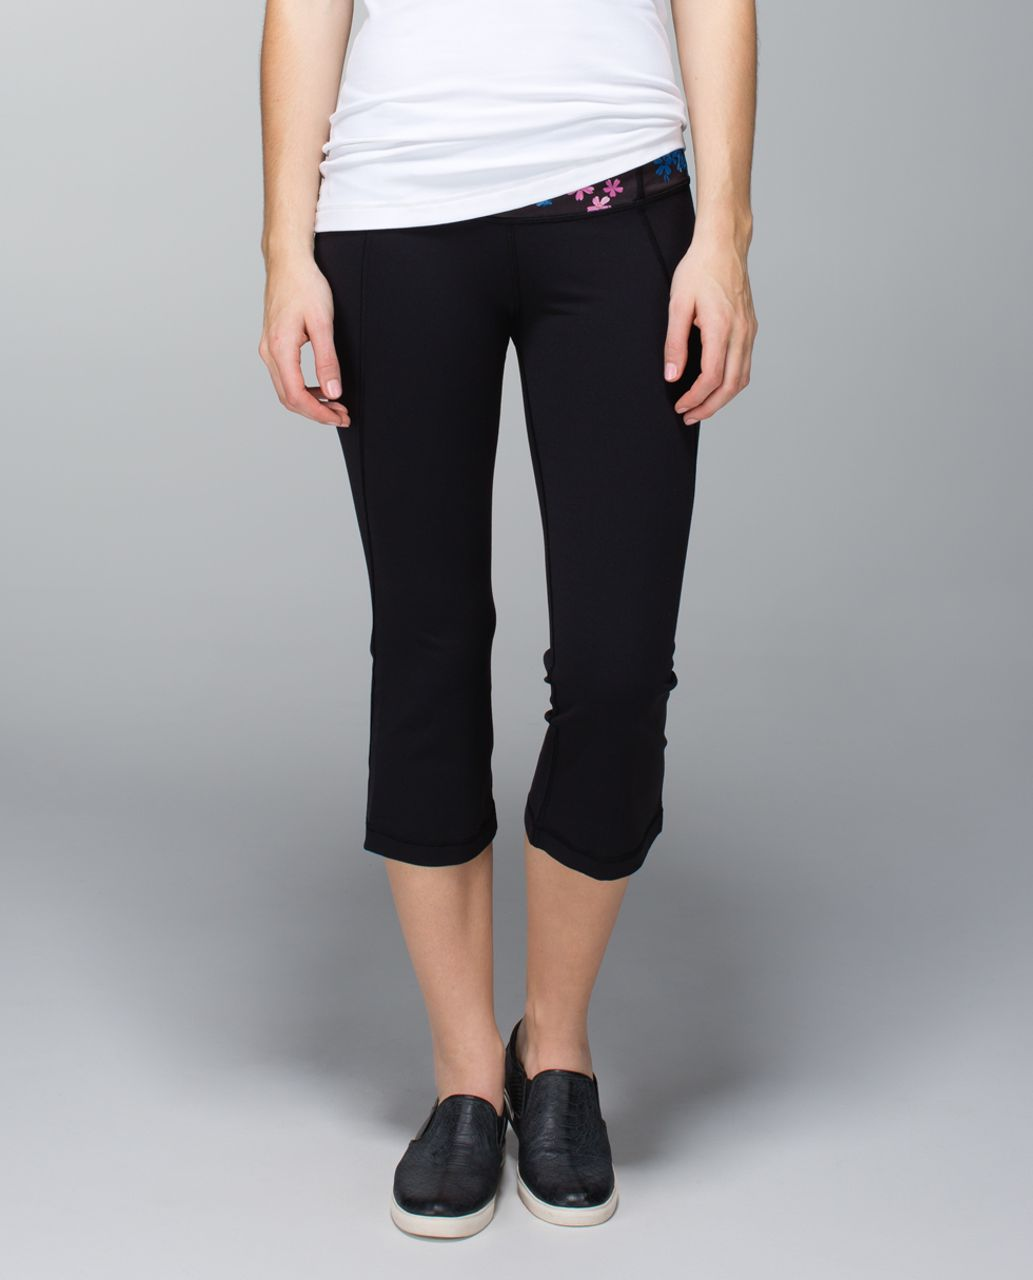 Lululemon Gather & Crow Crop *Full-On Luon - Black / Petal Pop Multi